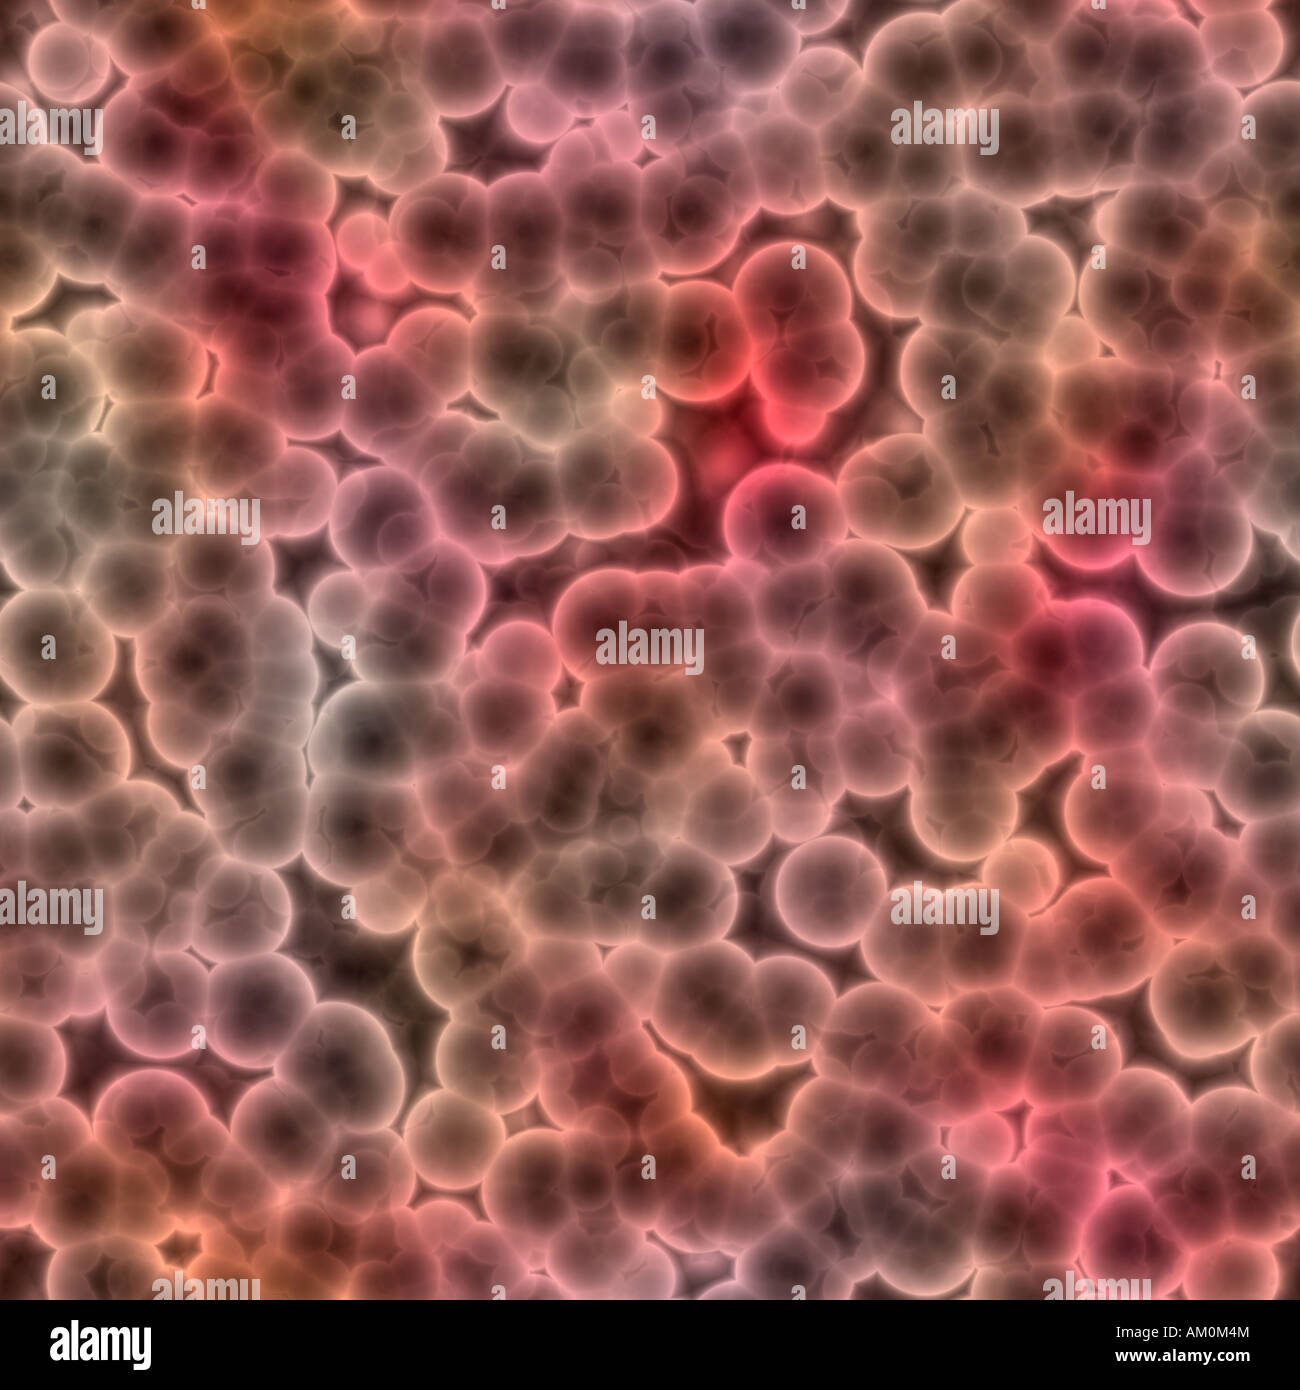 a large rendered image of bacteria or cells under a microscope - Stock Image